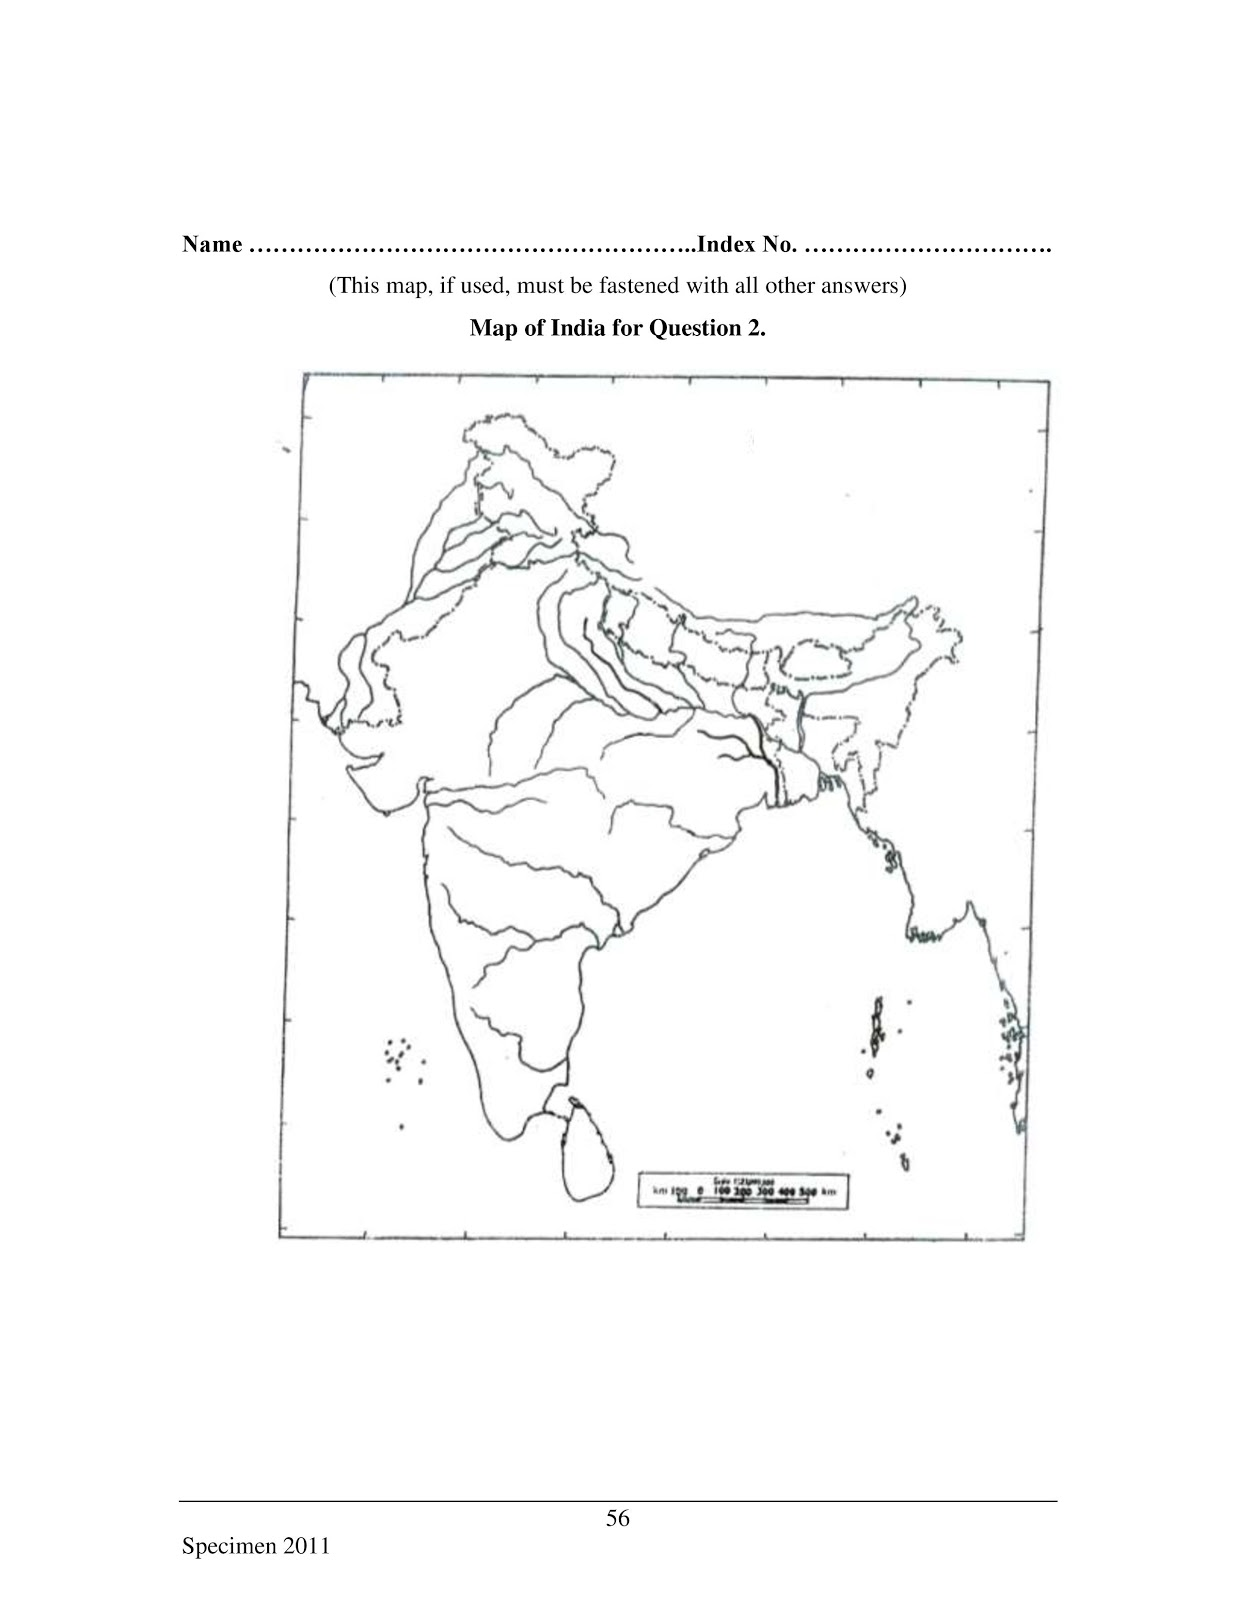 icse 2017 class 10th geography H.C.G Paper 2 specimen question paper